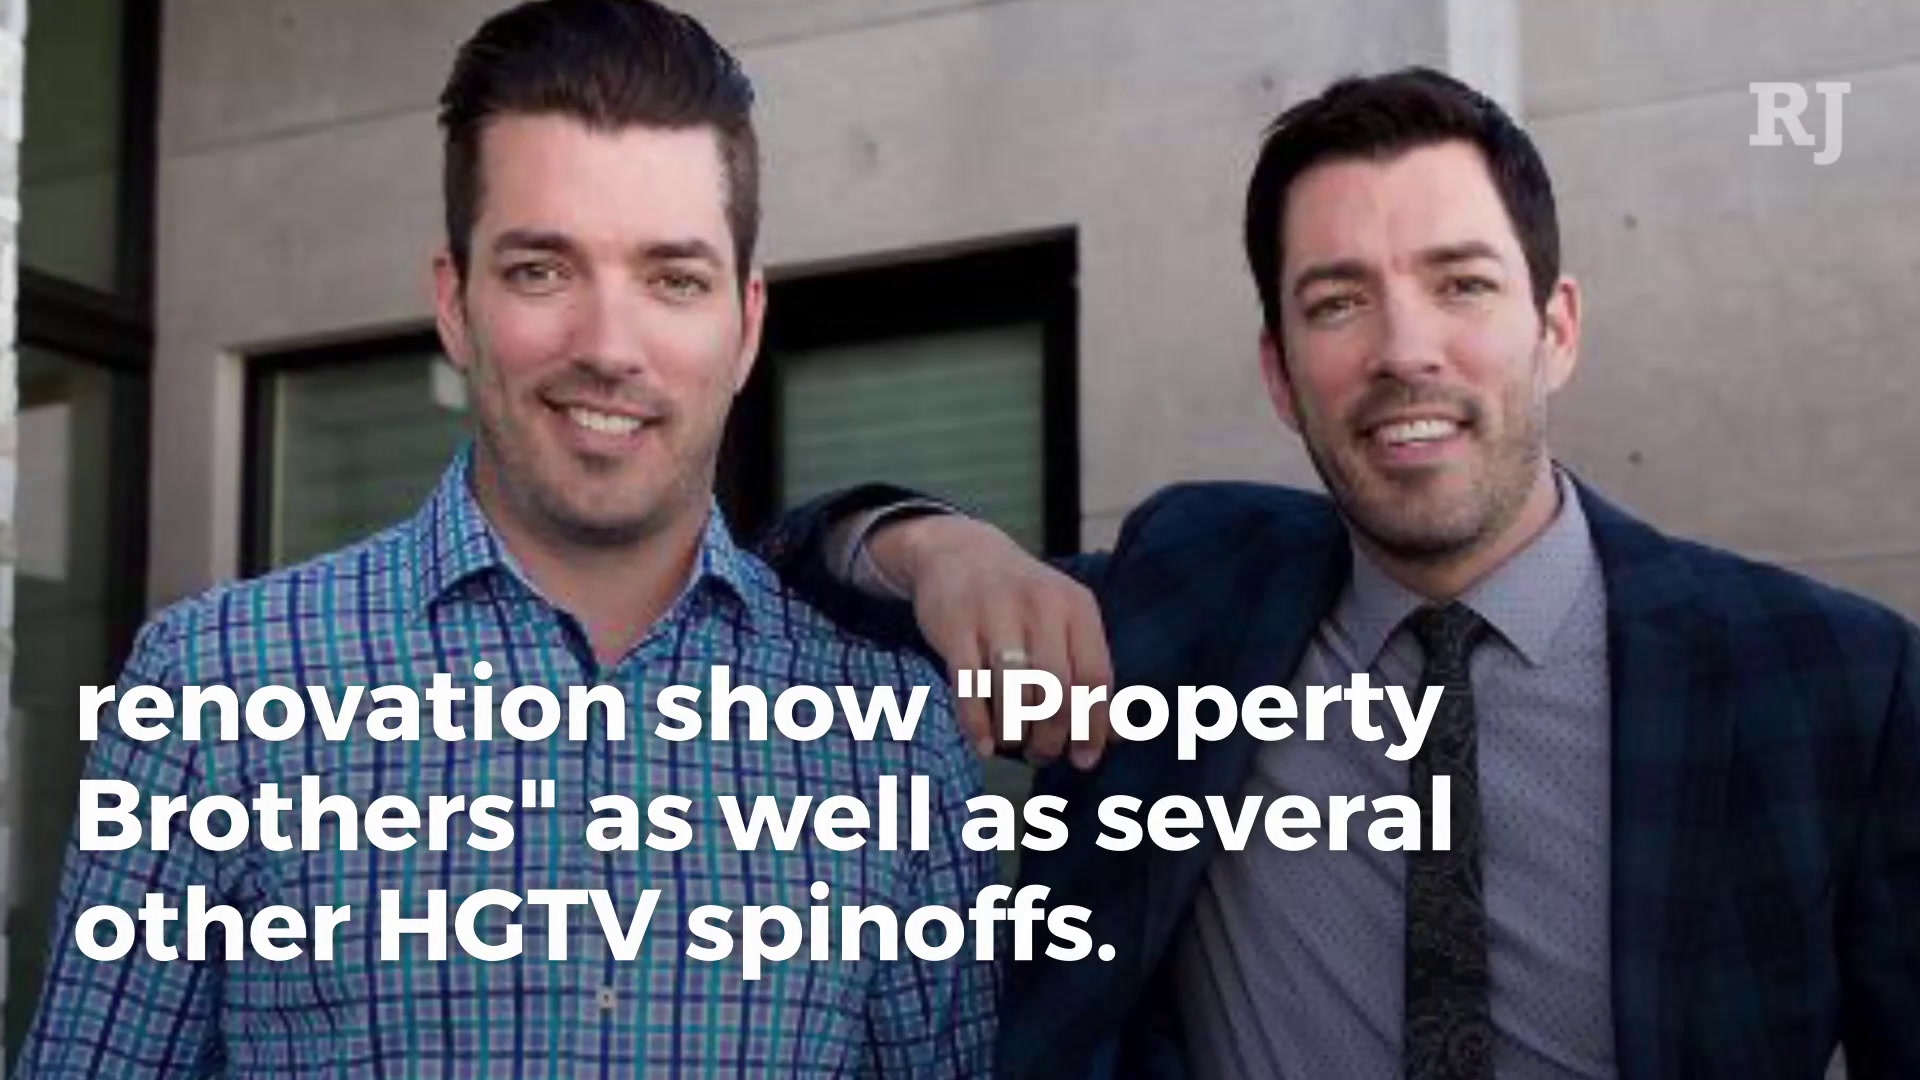 Property Brothers Showcase Furniture Line In Las Vegas Review Journal